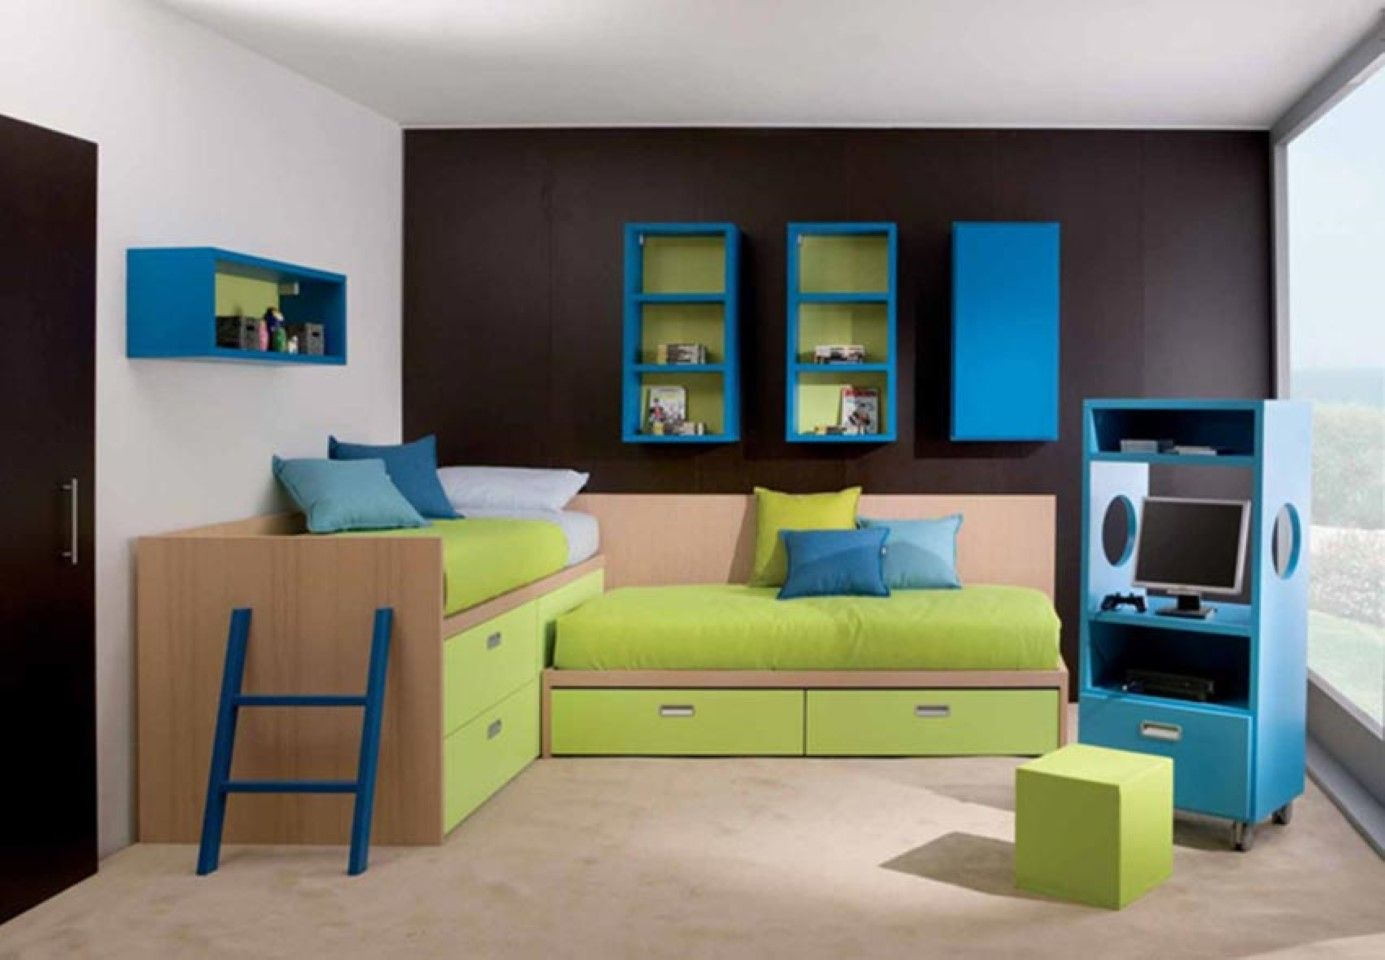 Kids Bedroom Furniture Designs Black And White Wall Paint Idea Feat L Shaped Bed With Storage